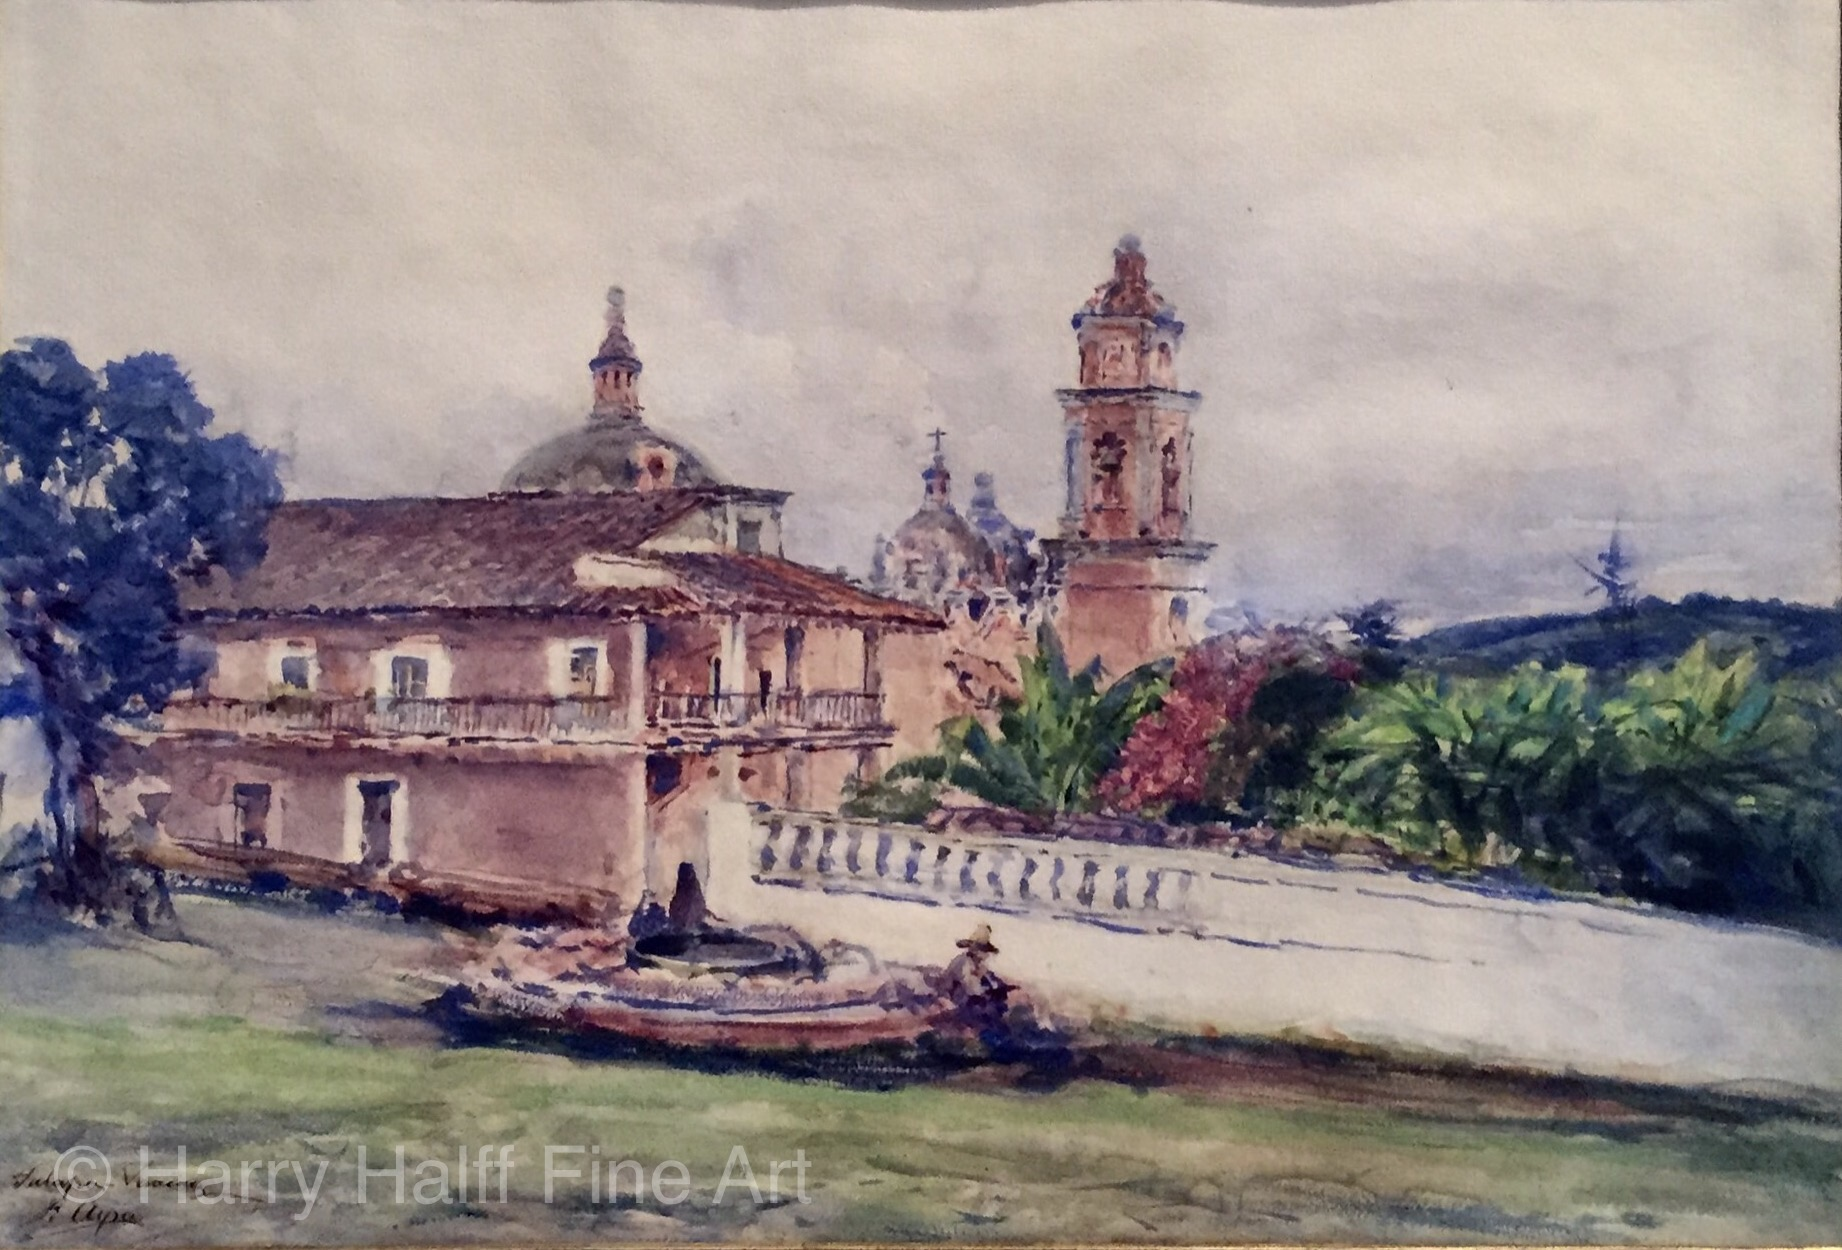 Jose Arpa's watercolor on paper painting of Jalapa-Veracruz